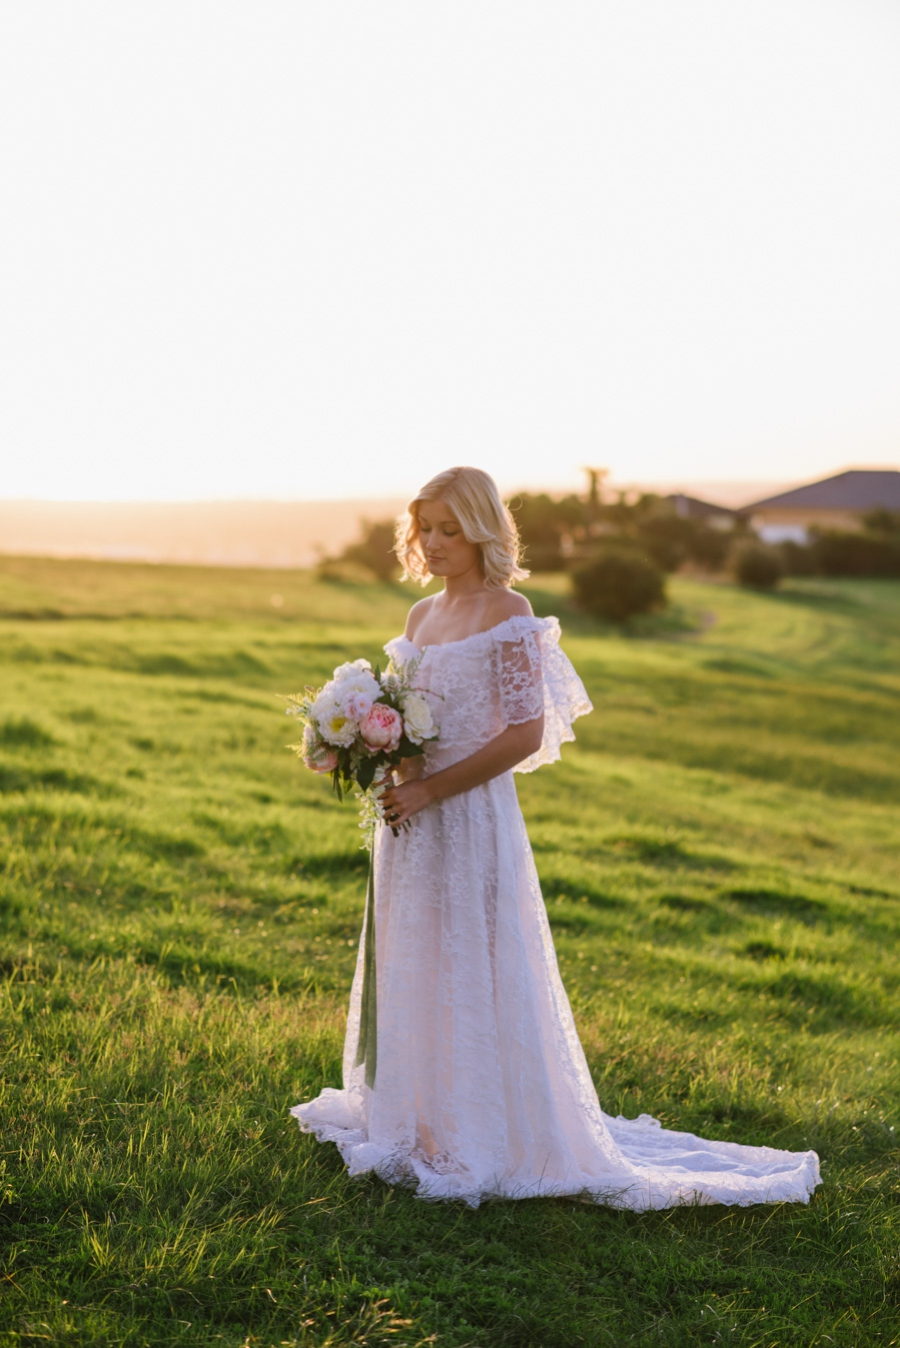 Lucinda May Photography | The Vintage Bride Boutique | Adelaide Boutique Wedding Photographer